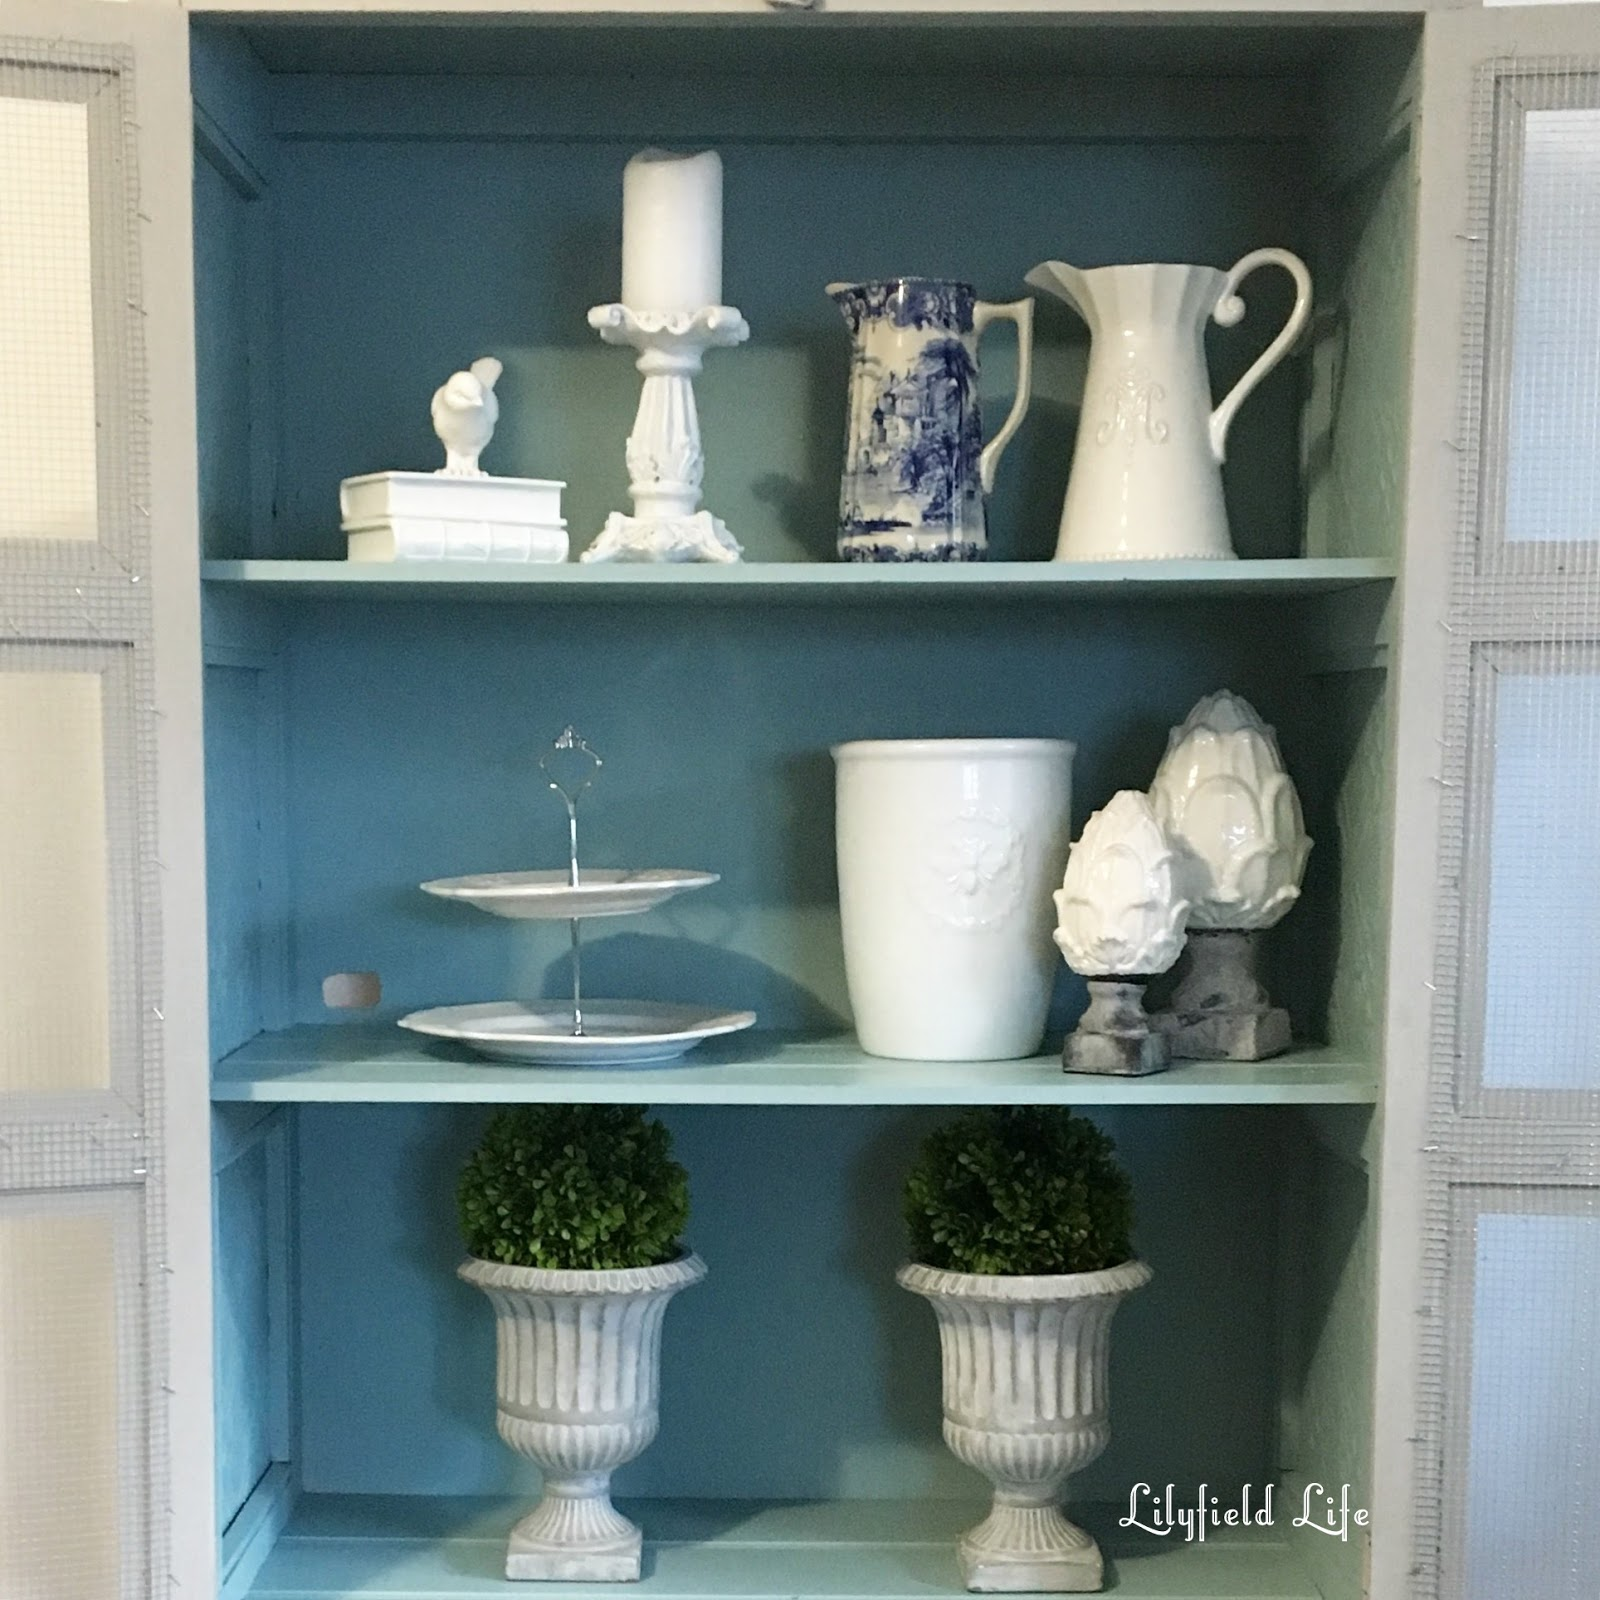 Lilyfield Life Pressed Tin And Chicken Wire Cabinet